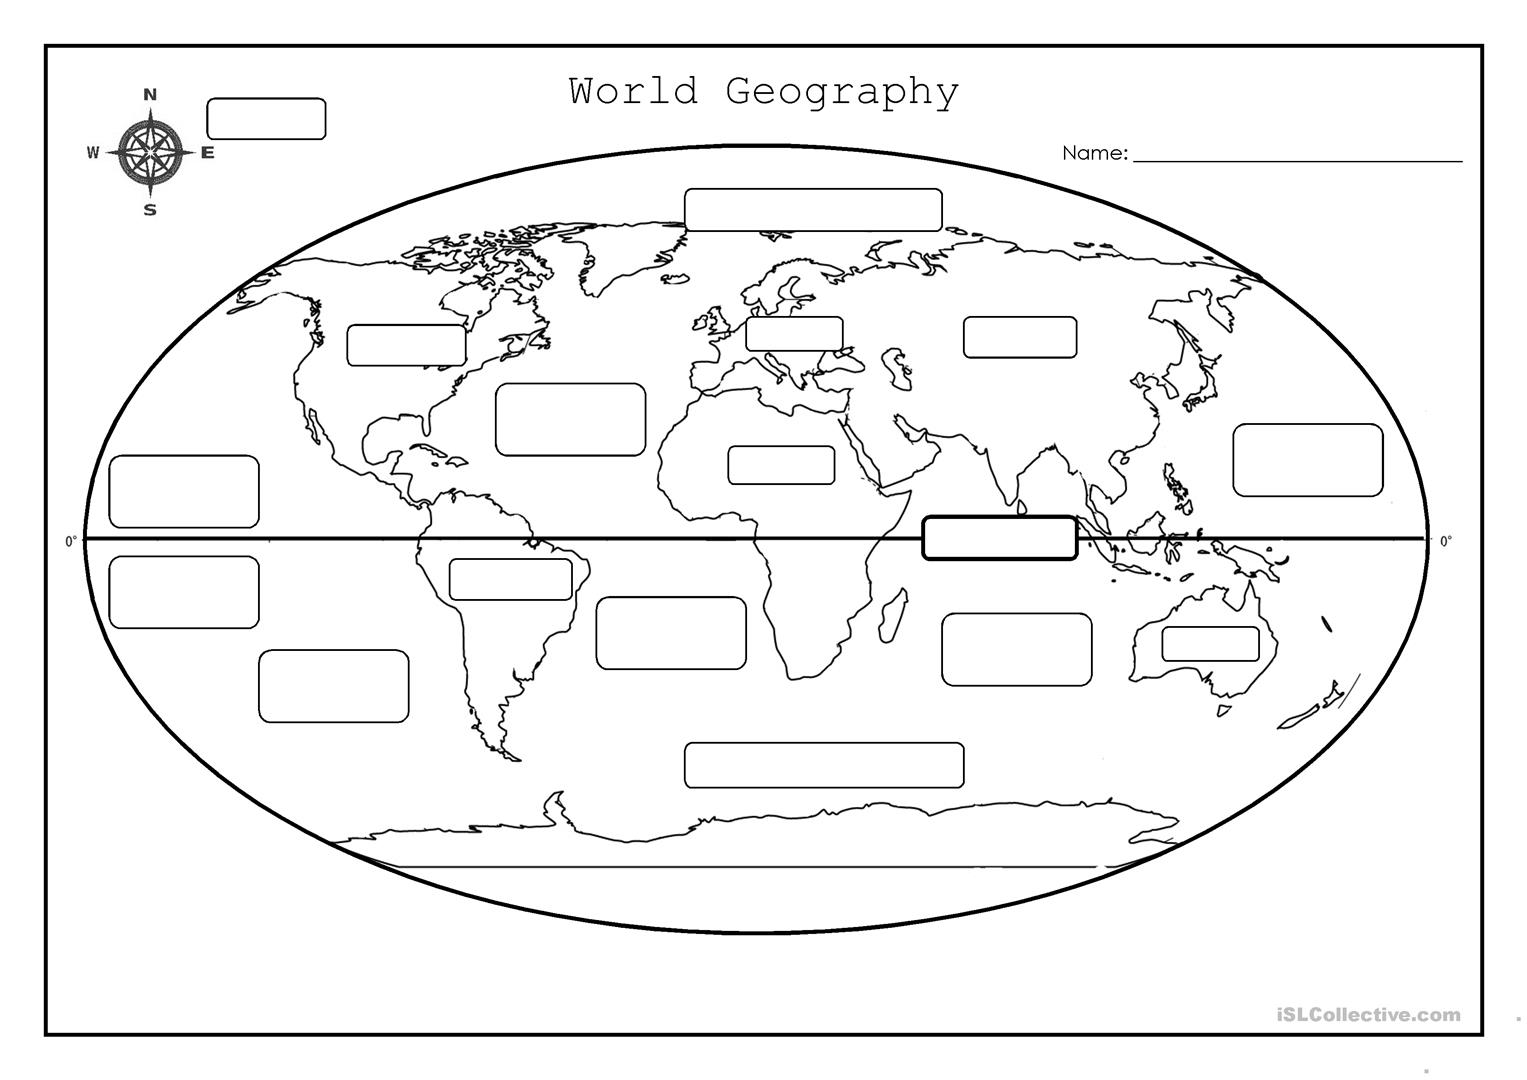 hight resolution of 34 World Geography Worksheet Answers - Worksheet Project List